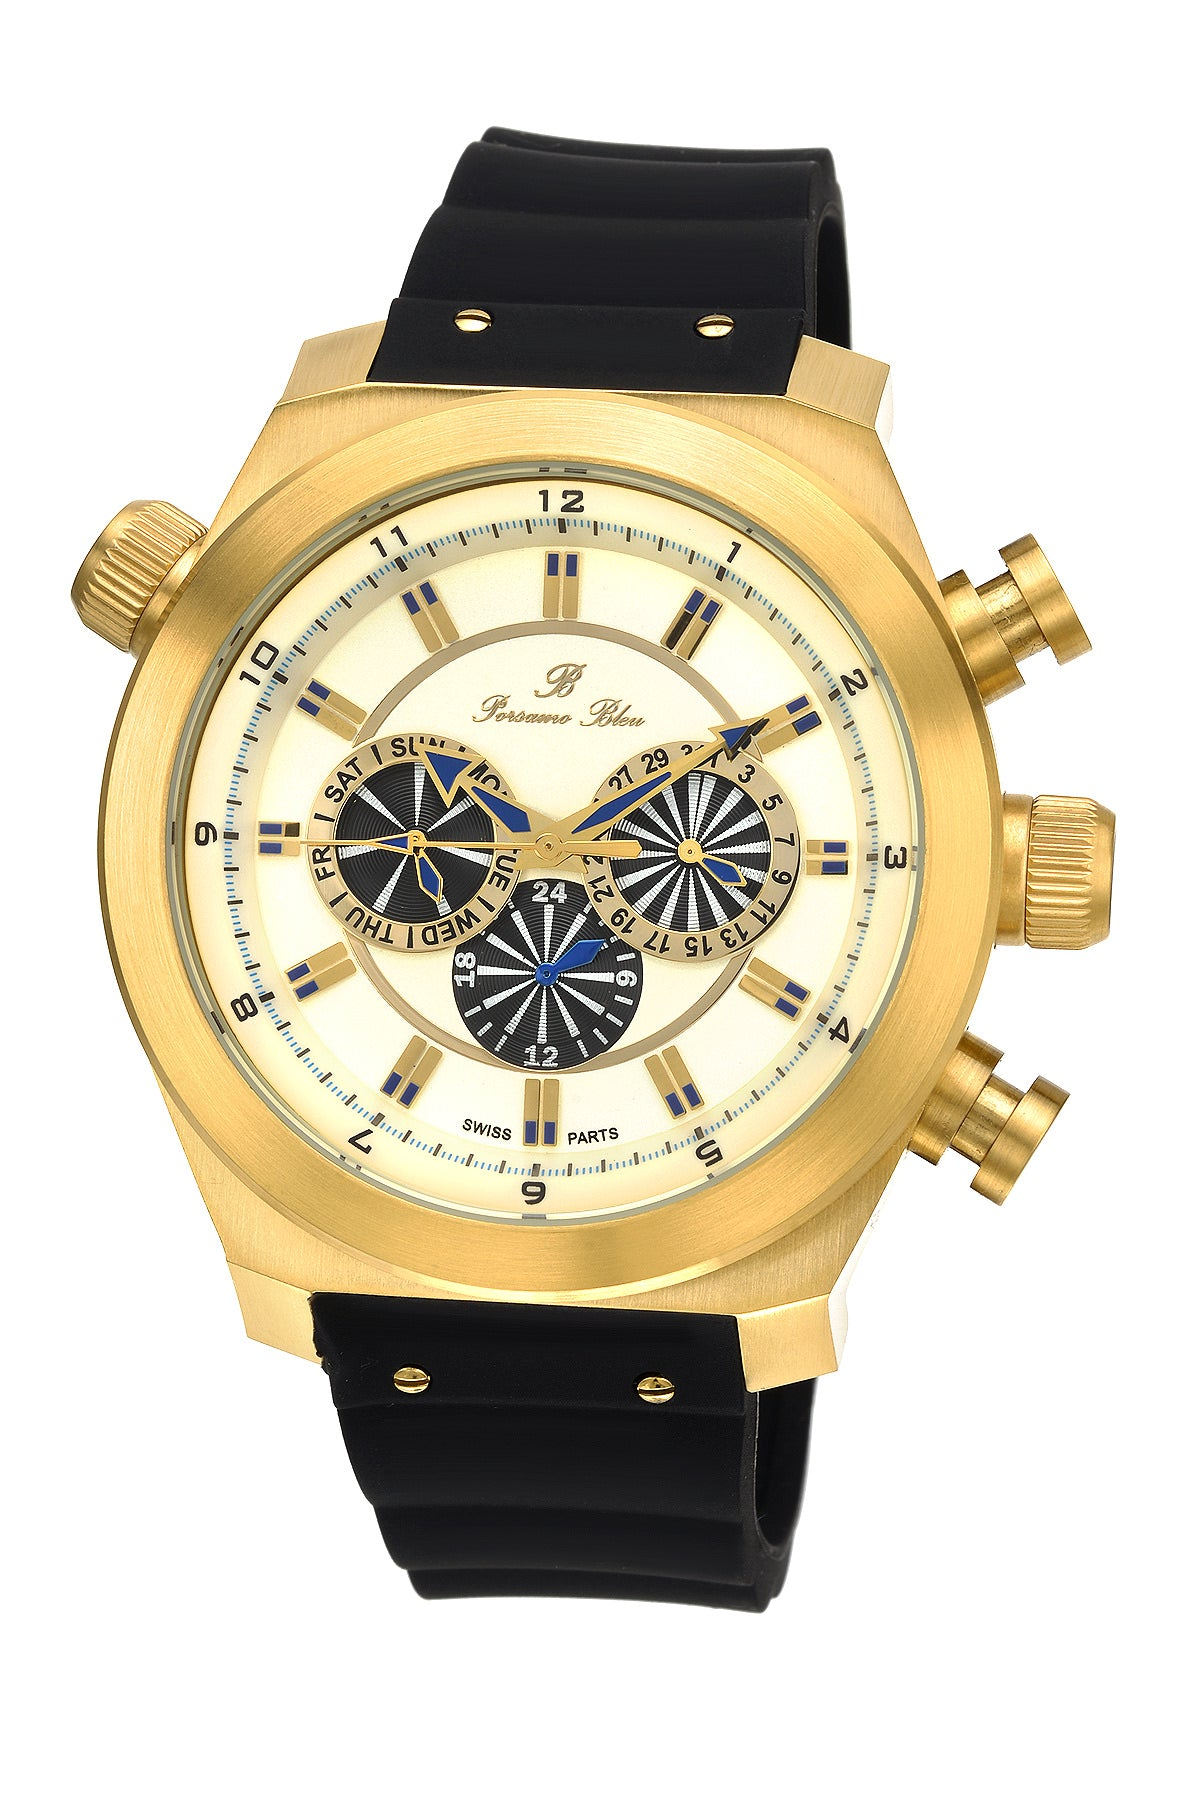 Porsamo Bleu Sydney luxury men's watch, silicone strap, gold, black 165BSYR